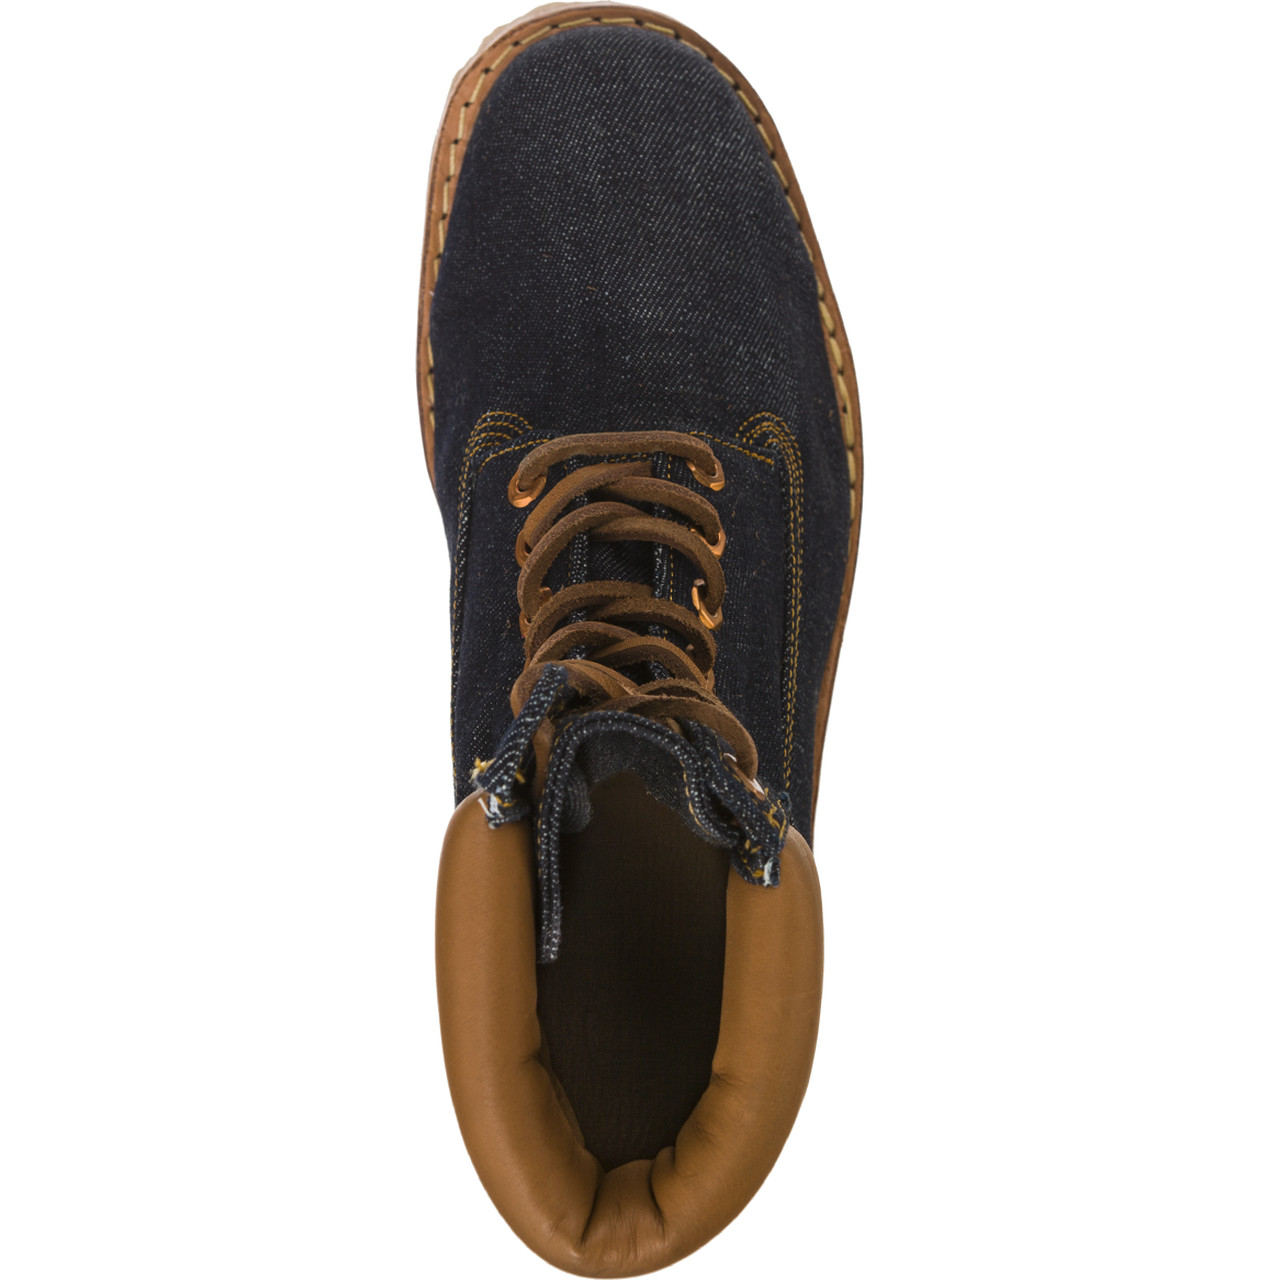 Buty Timberland HERITAGE 6 IN FABRIC B3R eastend.pl